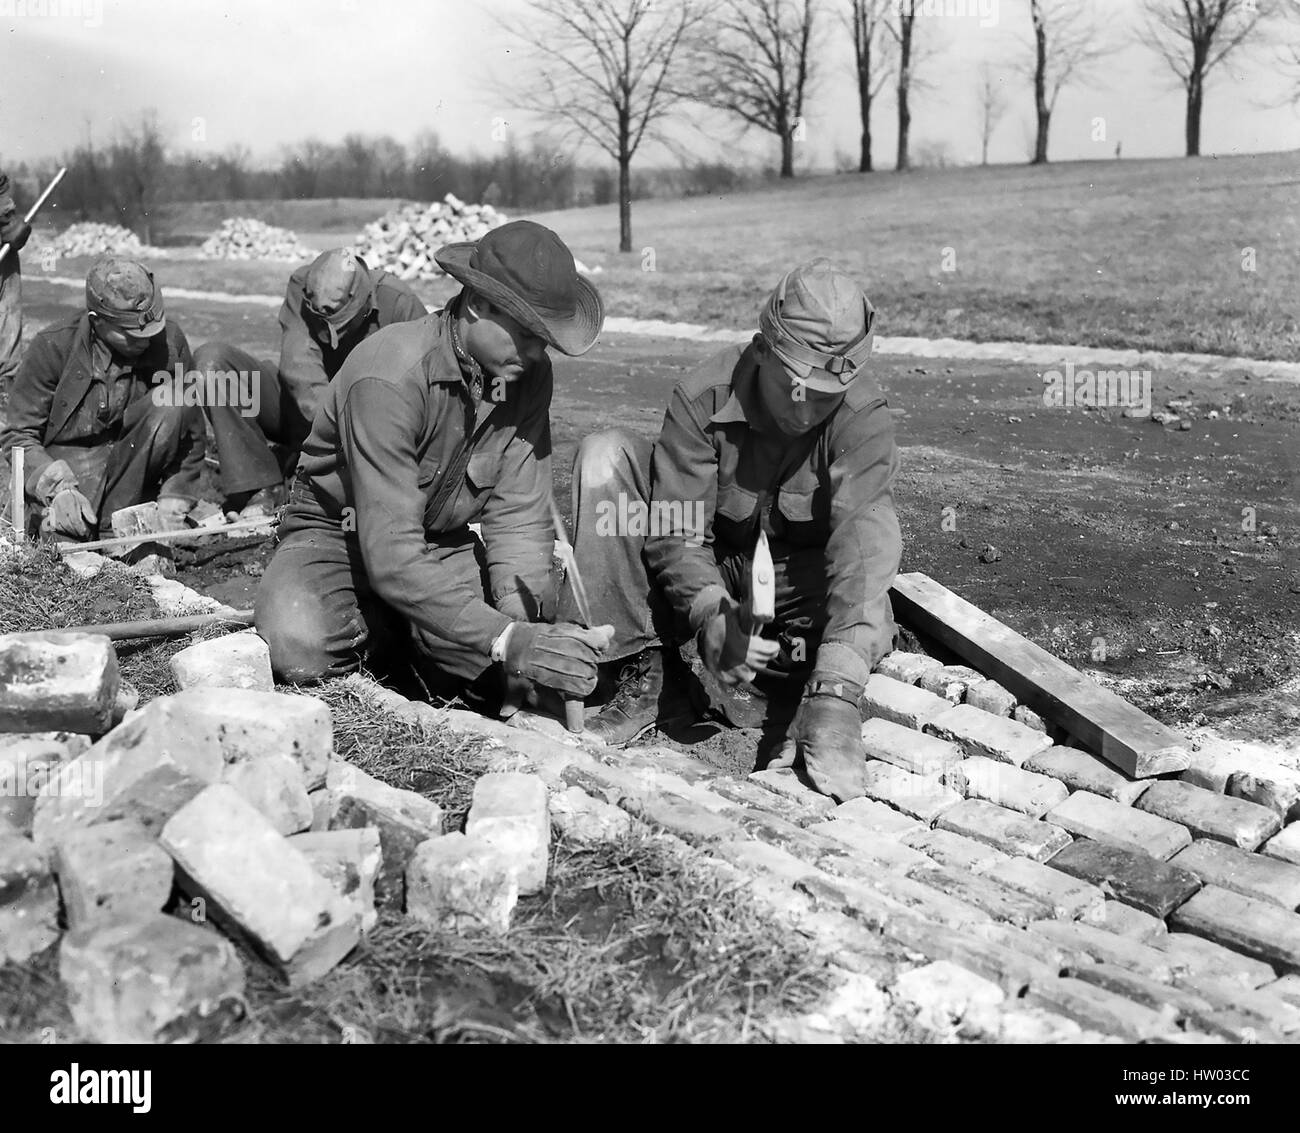 CIVILIAN CONSERVATION CORPS workers laying a road about 1933. Location unknown. - Stock Image